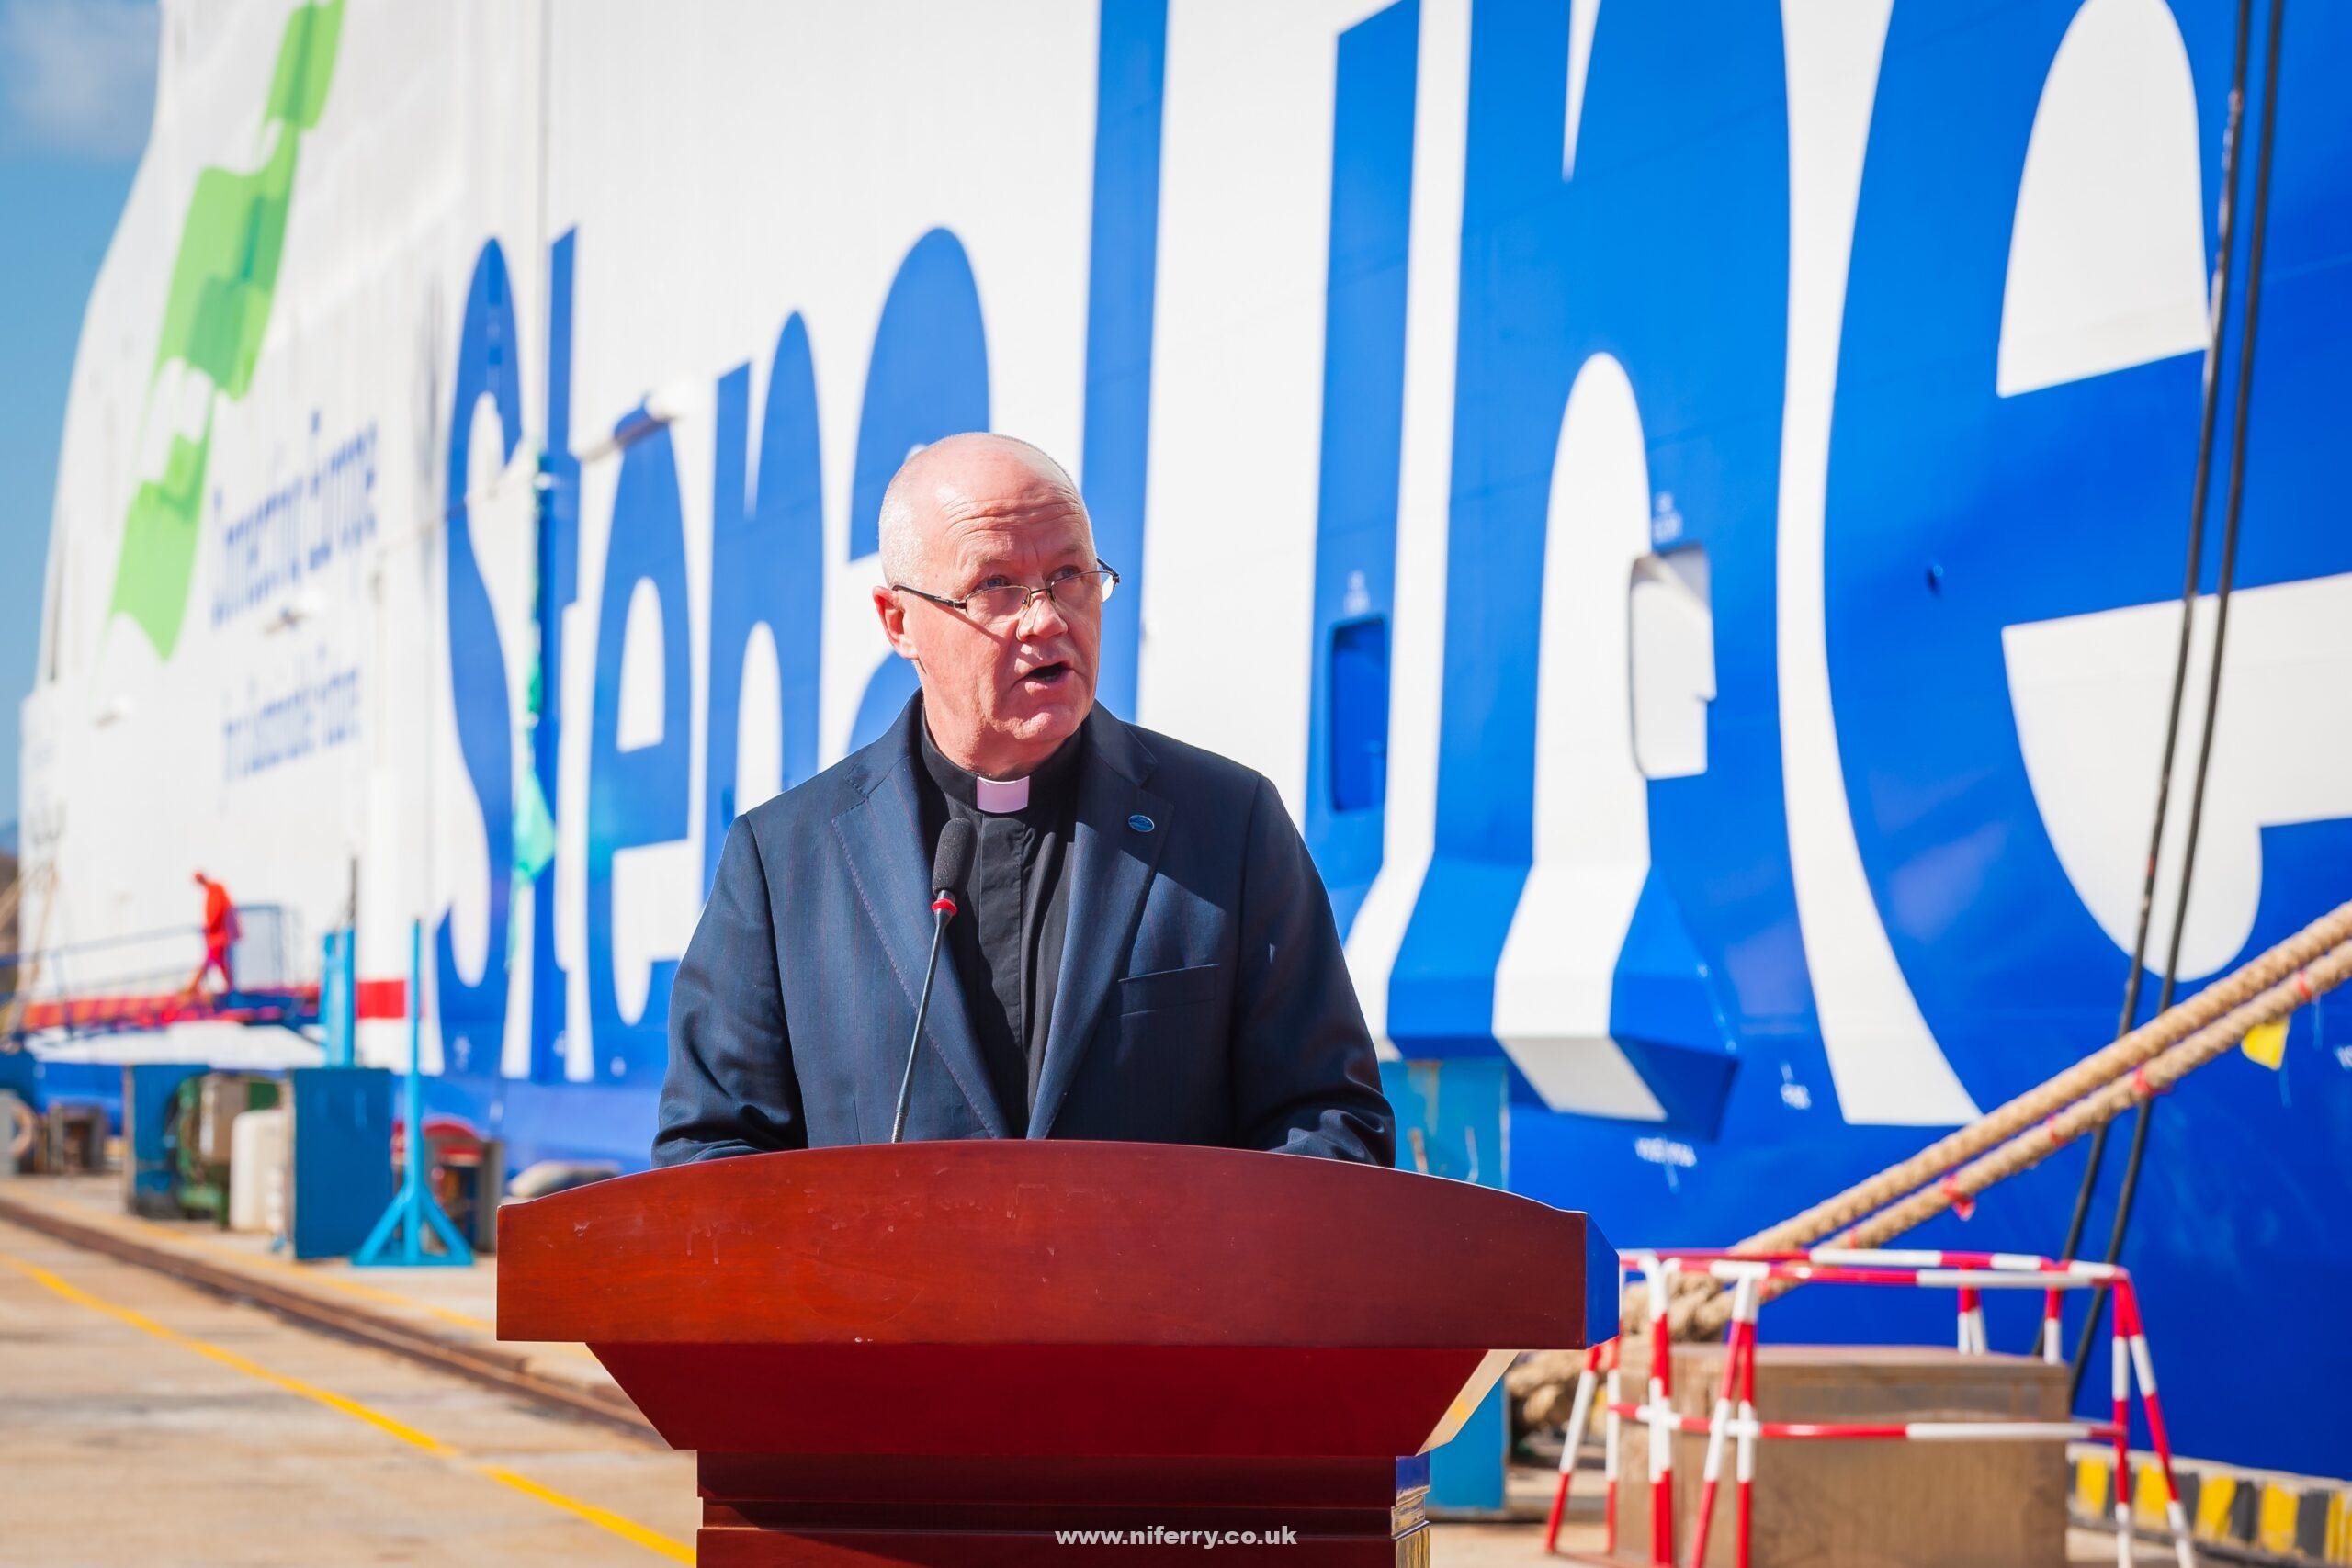 Reverend Cannon Stephen Miller Senior Chaplain at the Mission to Seafarers based in Hong Kong blesses the Stena Estrid. Stena Line